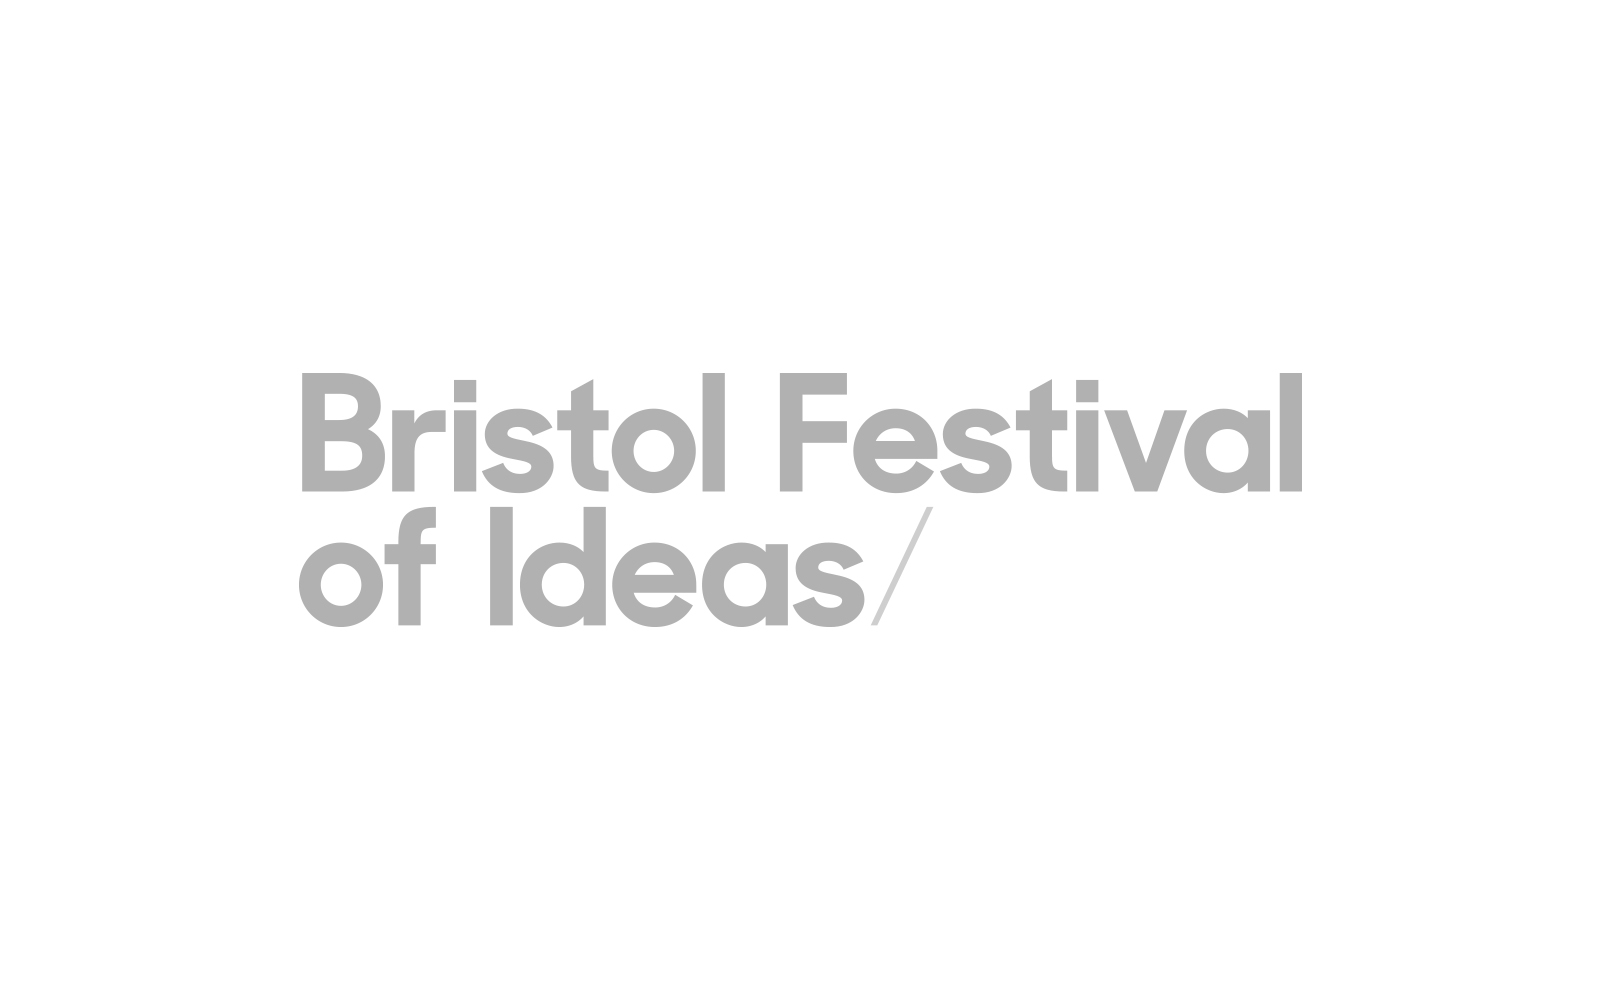 Bristol Festival of Ideas